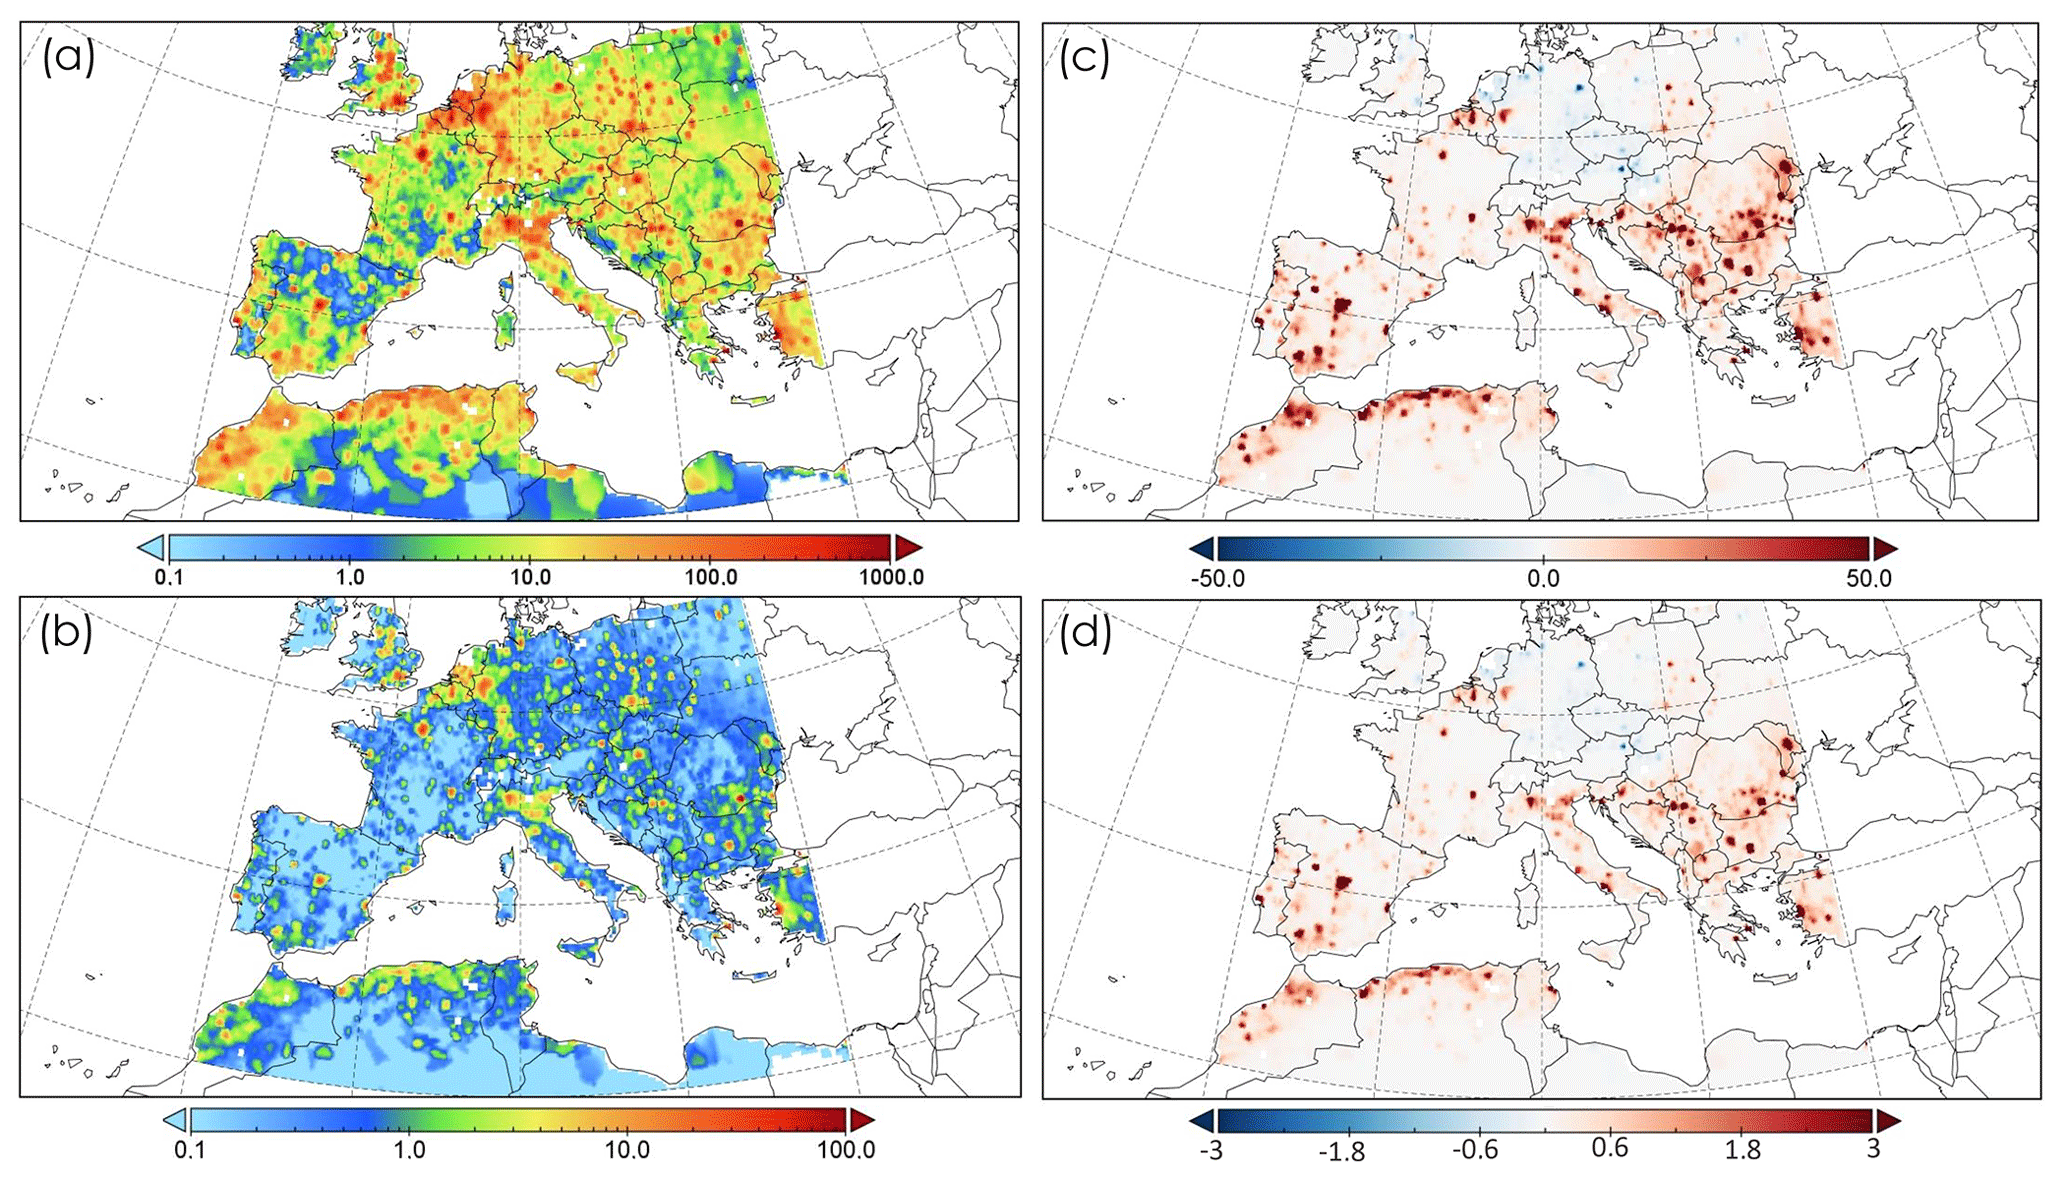 ACP - Isolating the climate change impacts on air-pollution